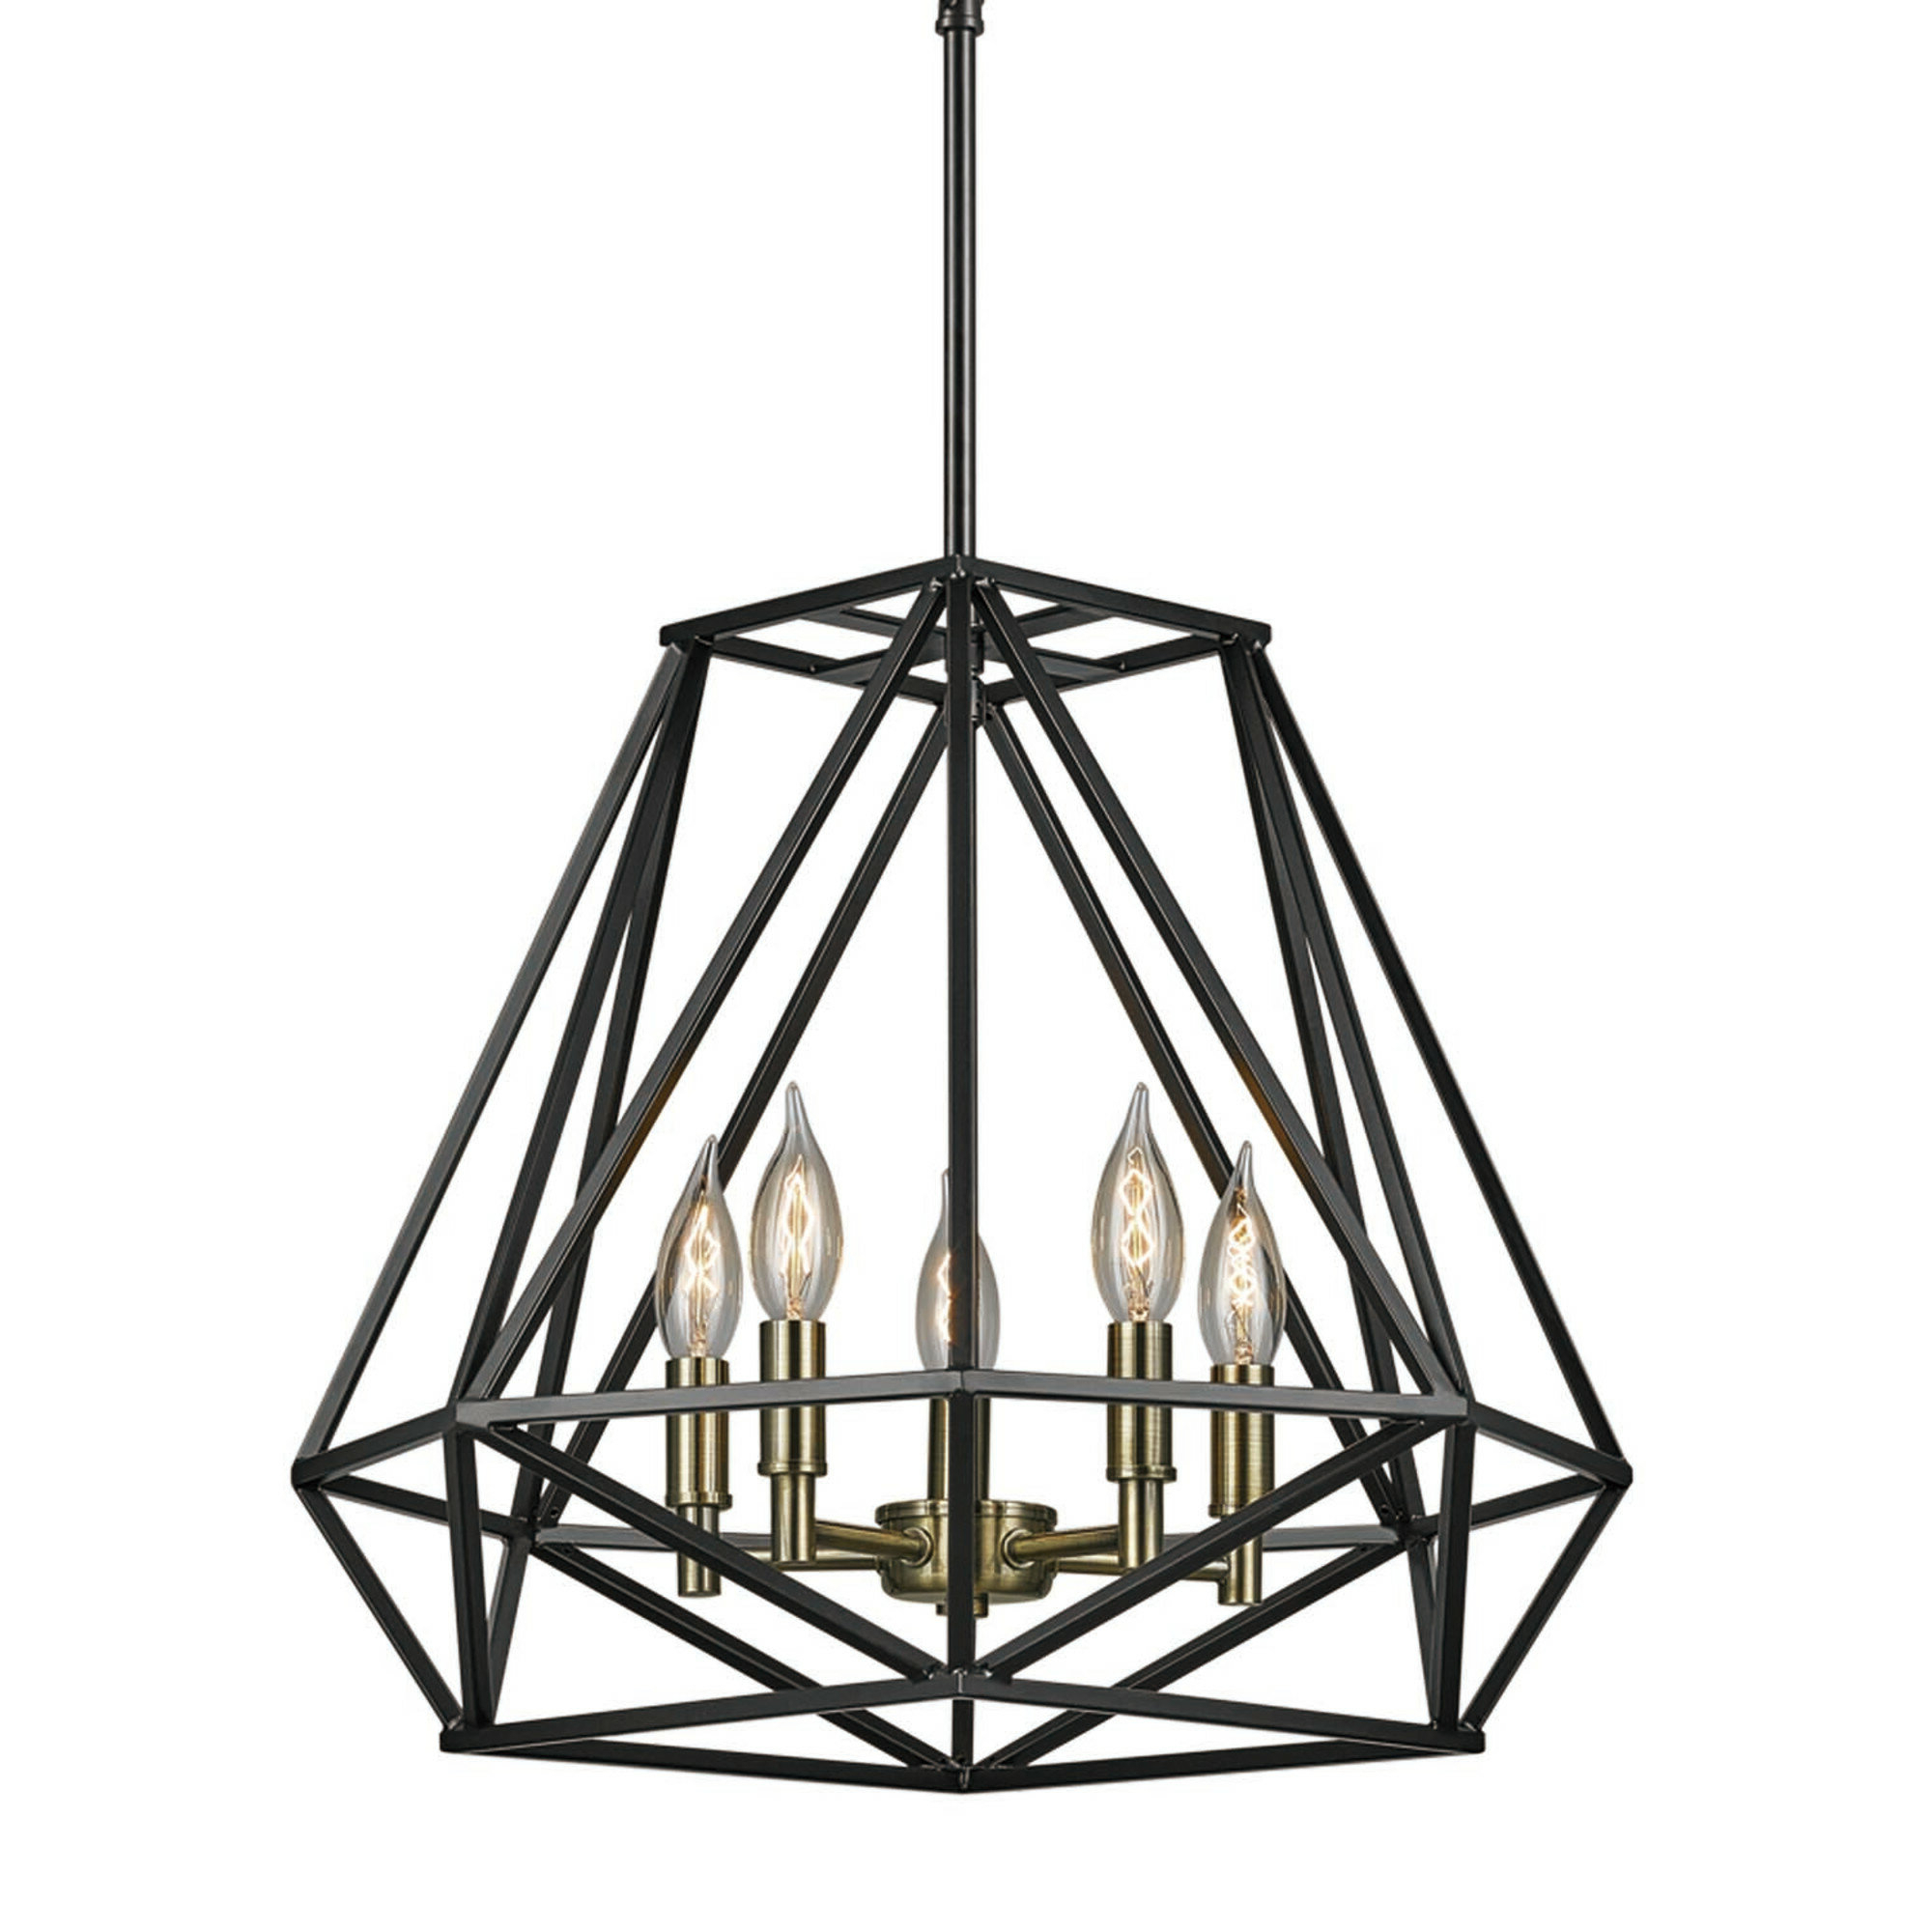 Tabit 5 Light Geometric Chandelier With Regard To Most Current Hydetown 1 Light Single Geometric Pendants (View 16 of 25)